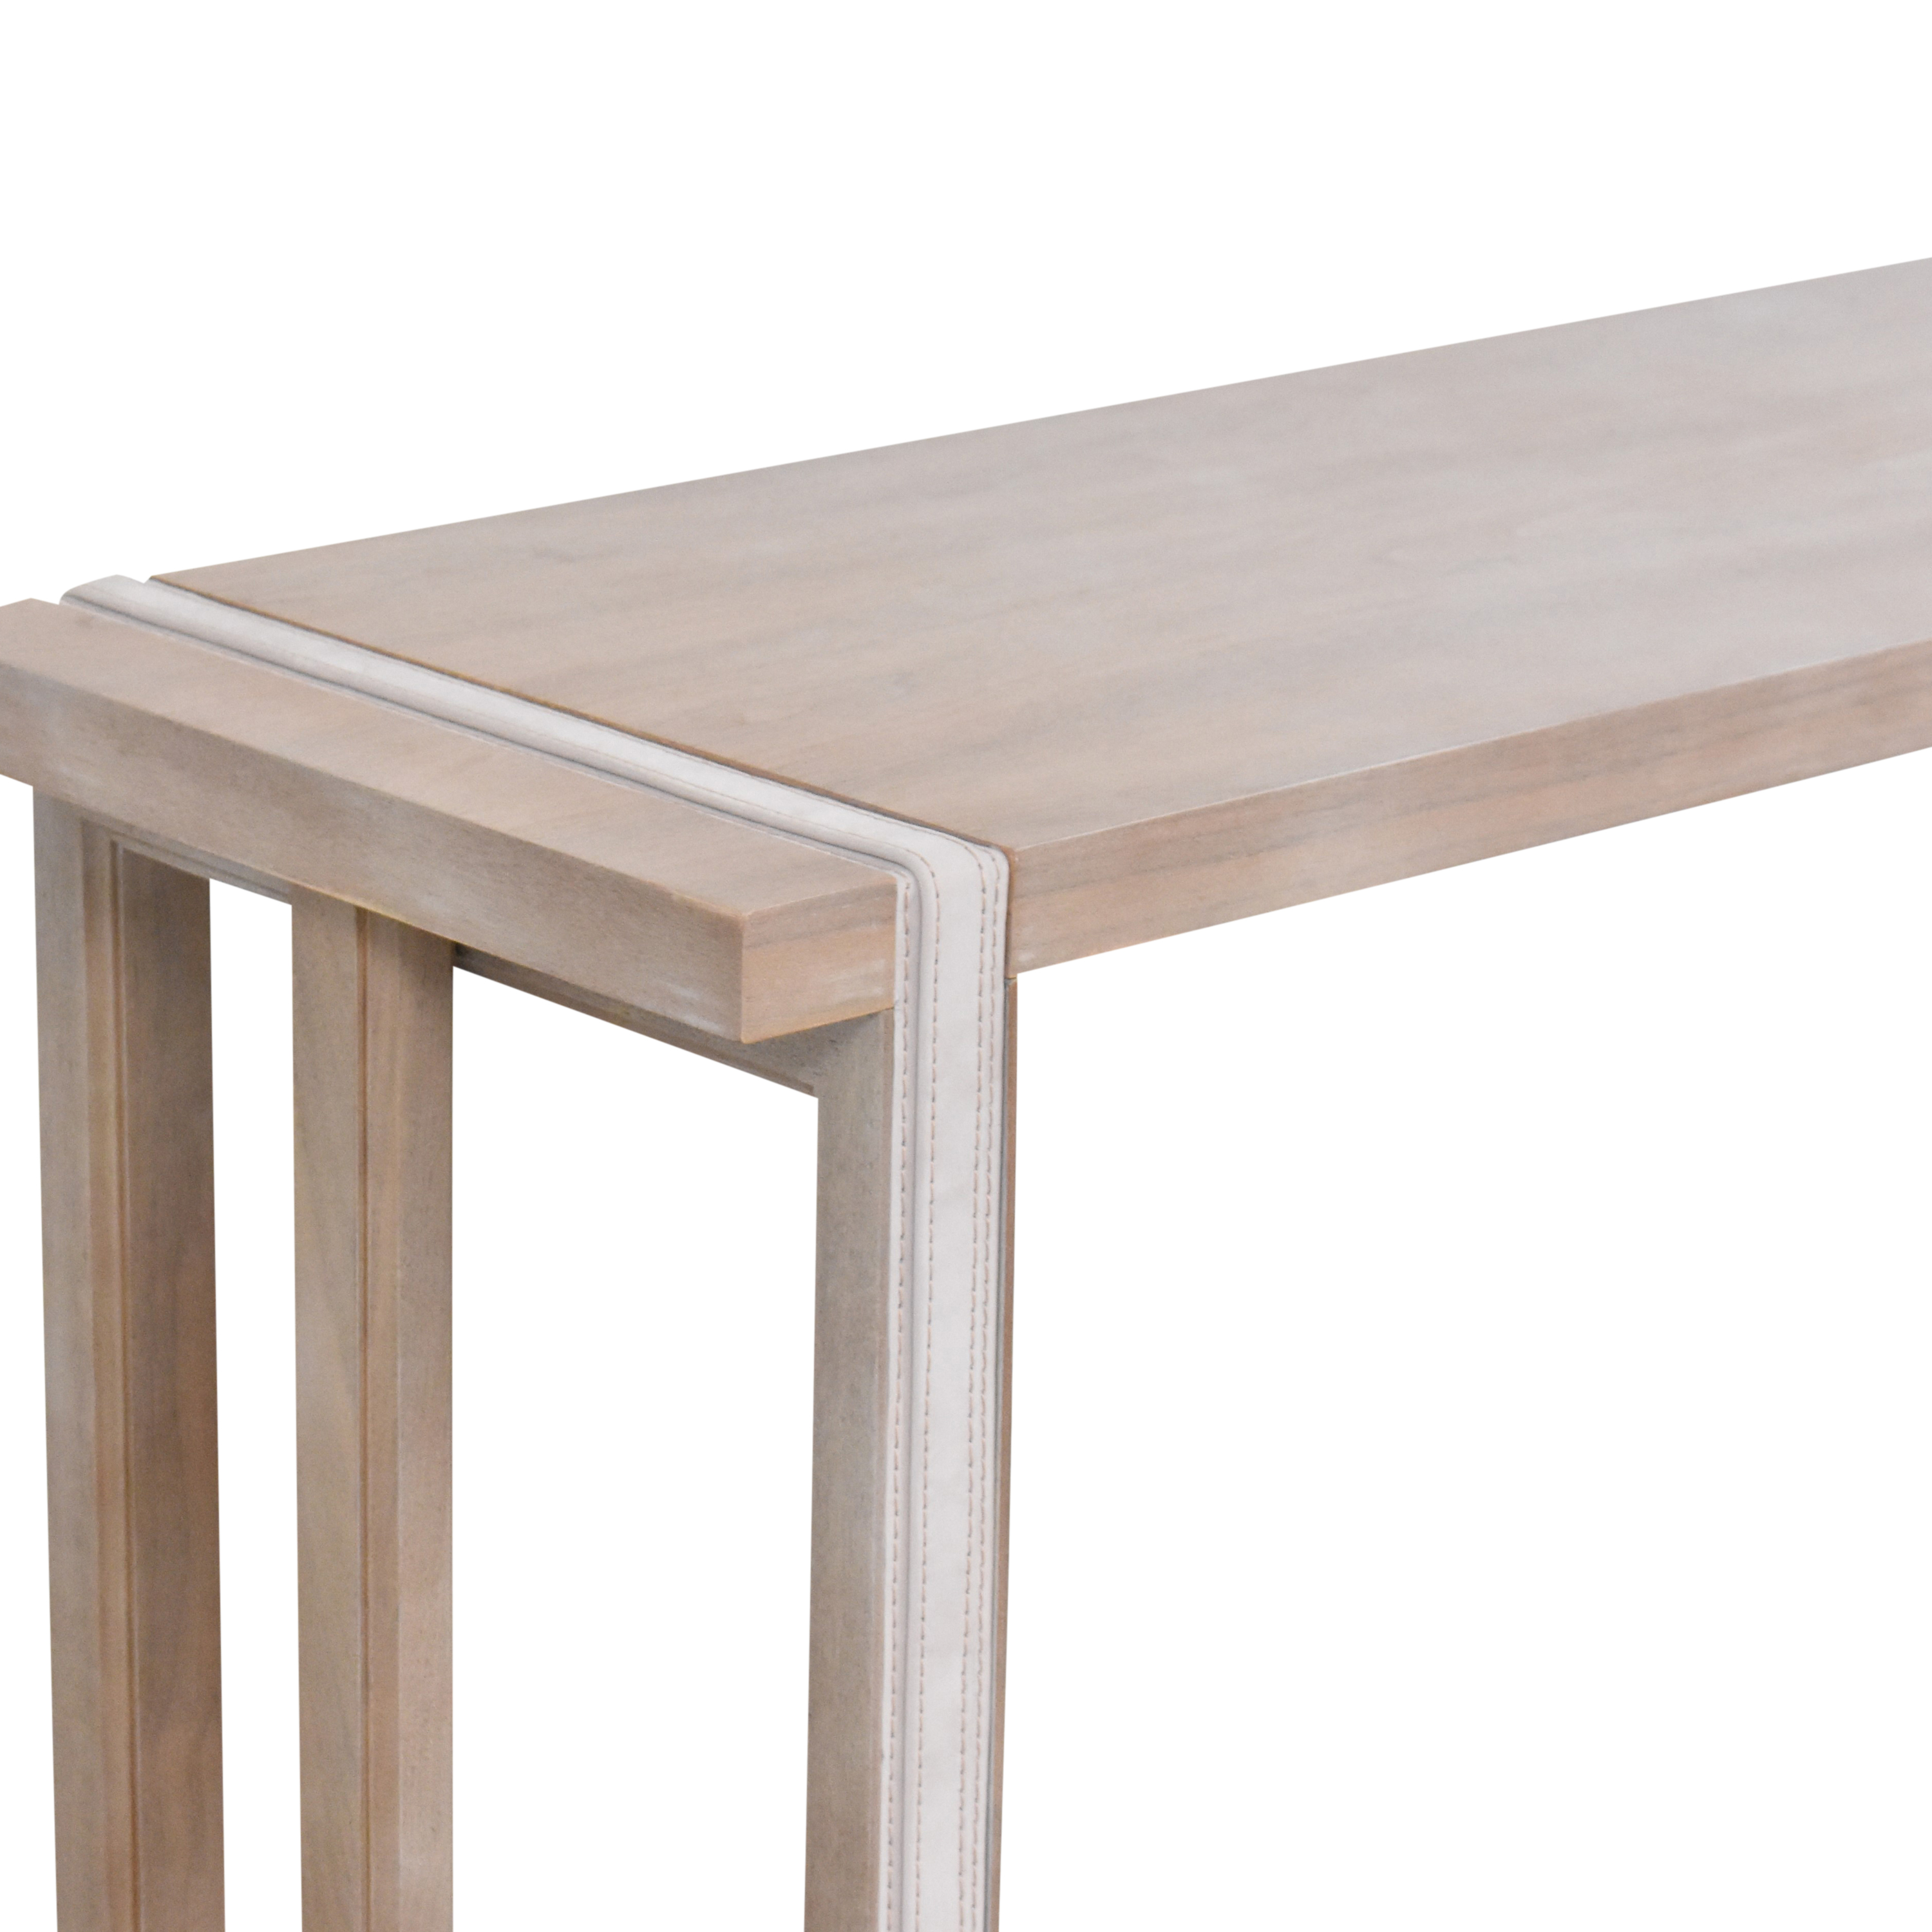 The New Traditionalists The New Traditionalists Console Table with Belt Detail nj